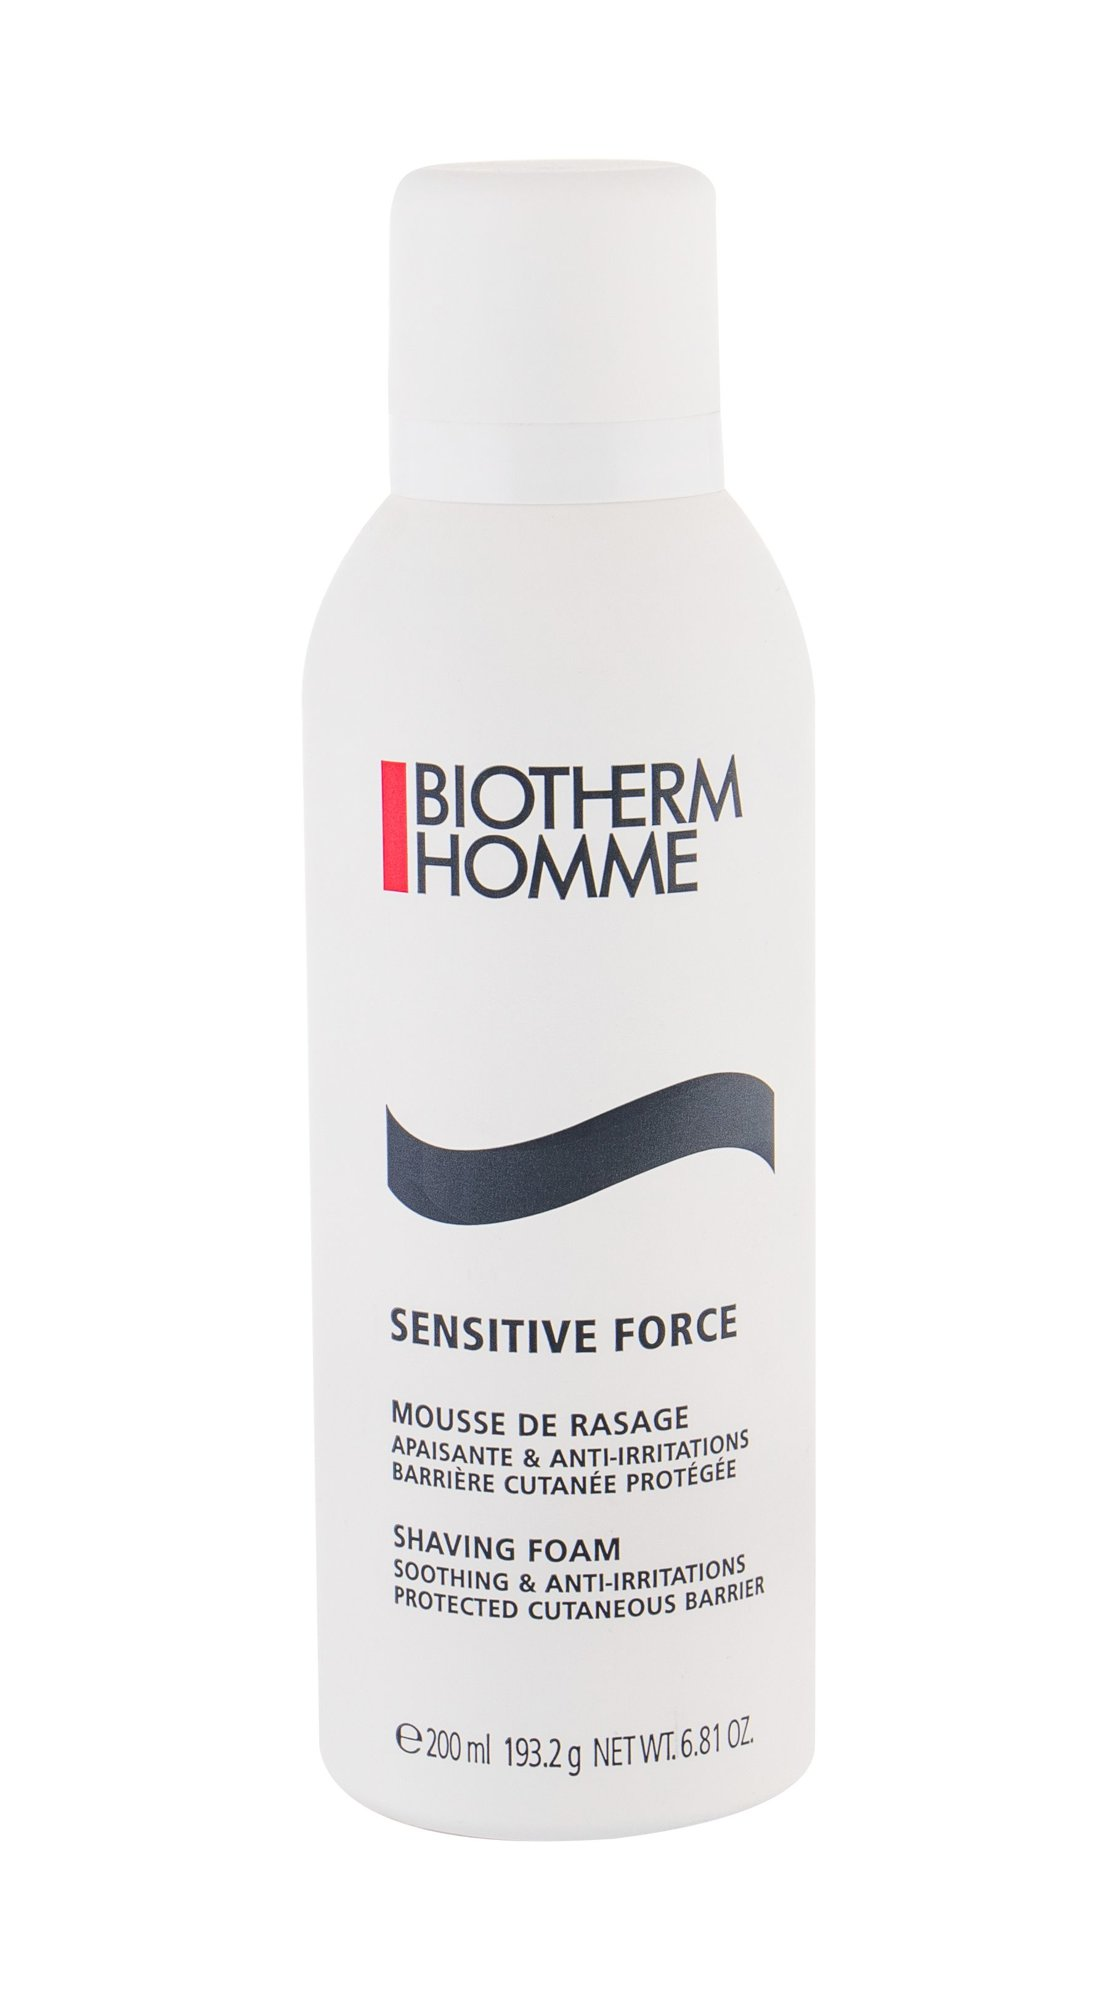 Biotherm Homme Shaving Foam 200ml